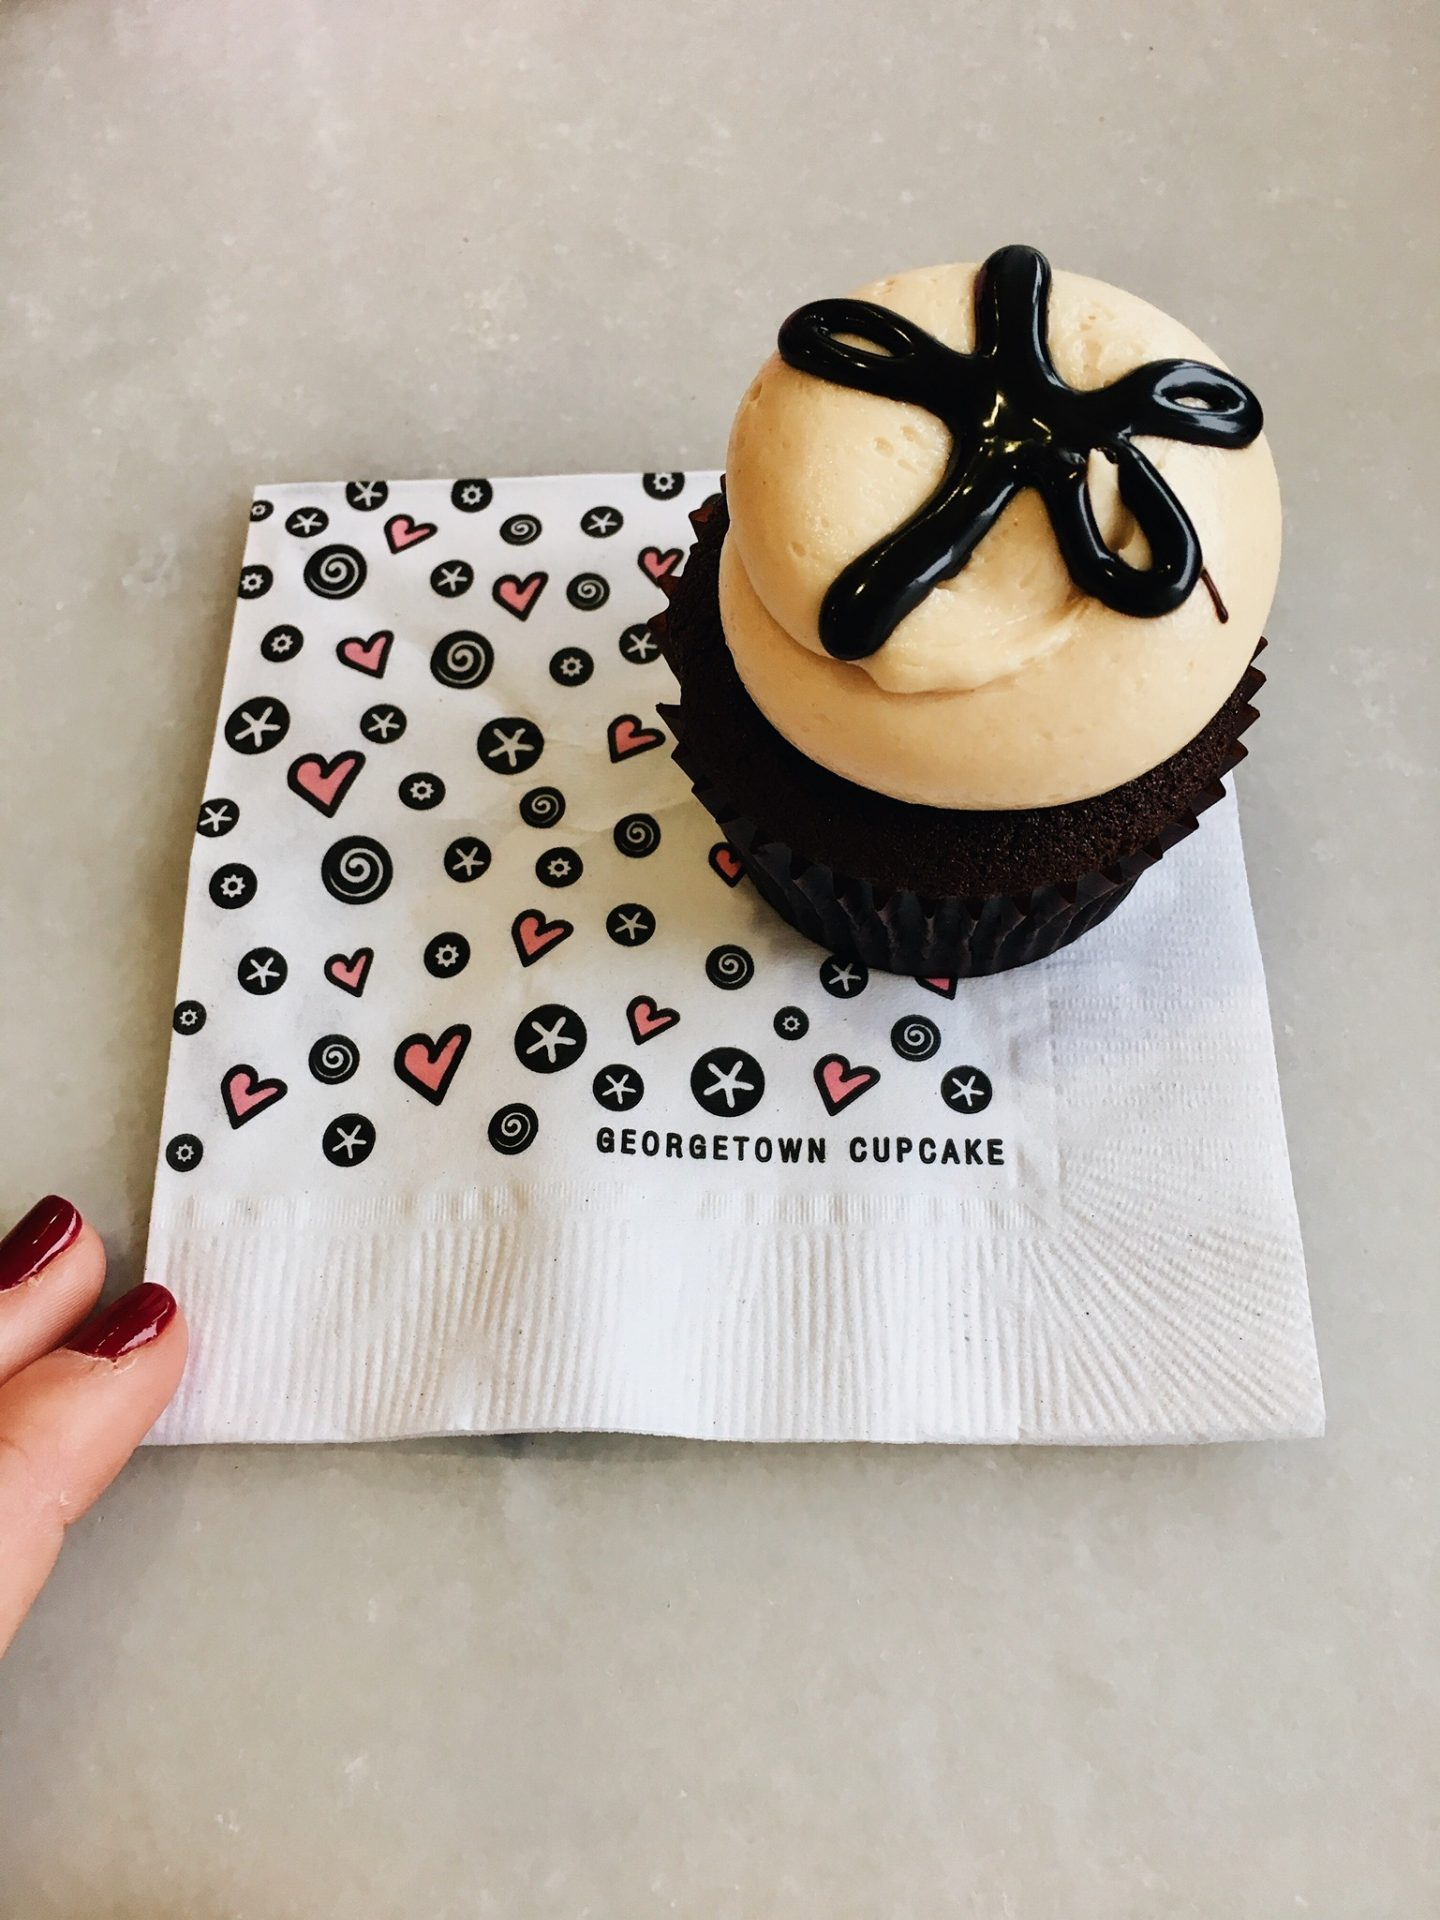 Eating a cupcake at DC Cupcakes in Georgetown in Washington DC